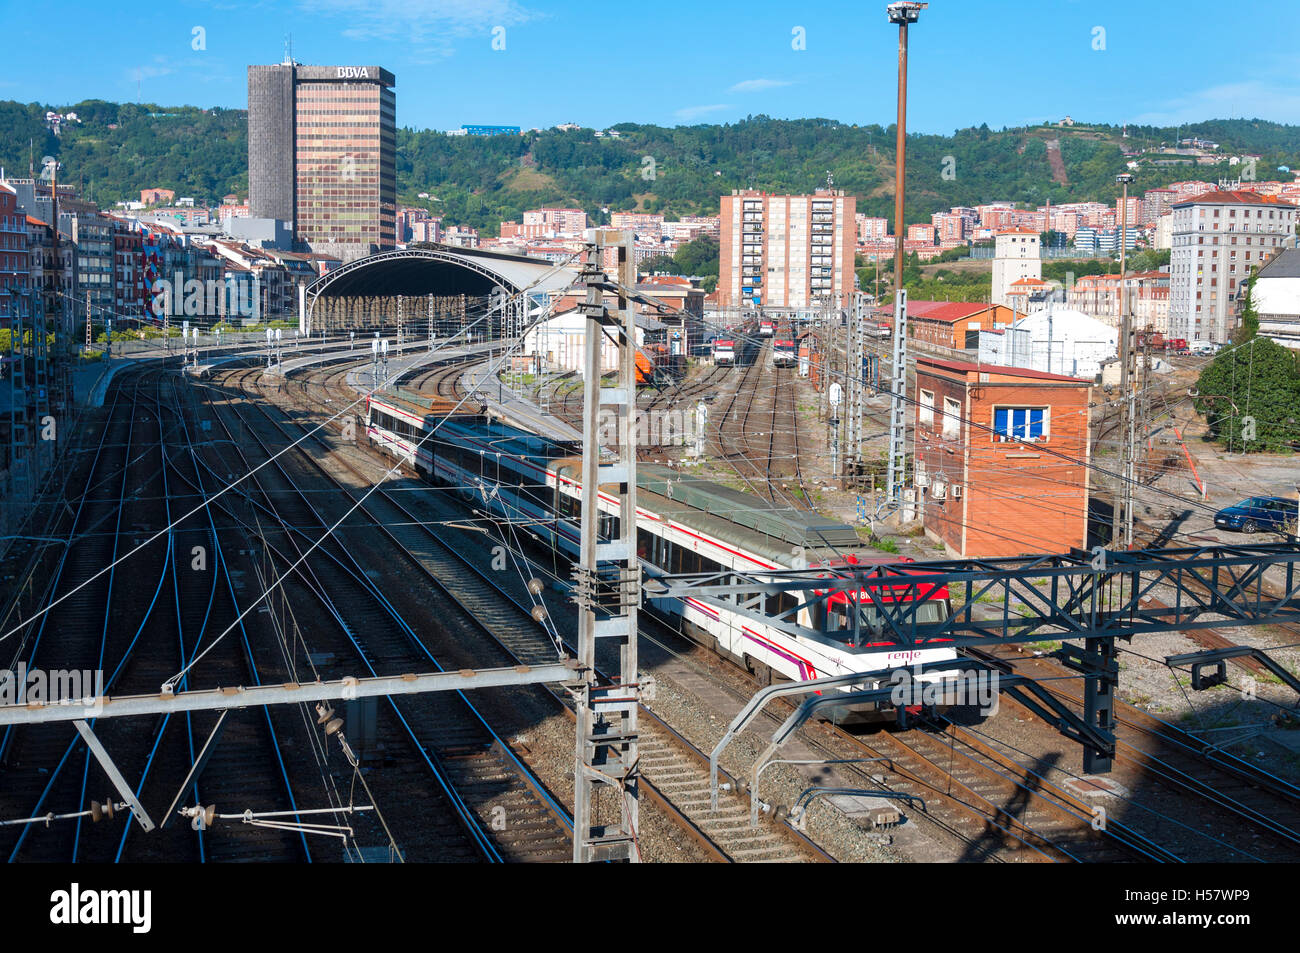 Train leaves Bilbao railway station, Basque region, Spain - Stock Image